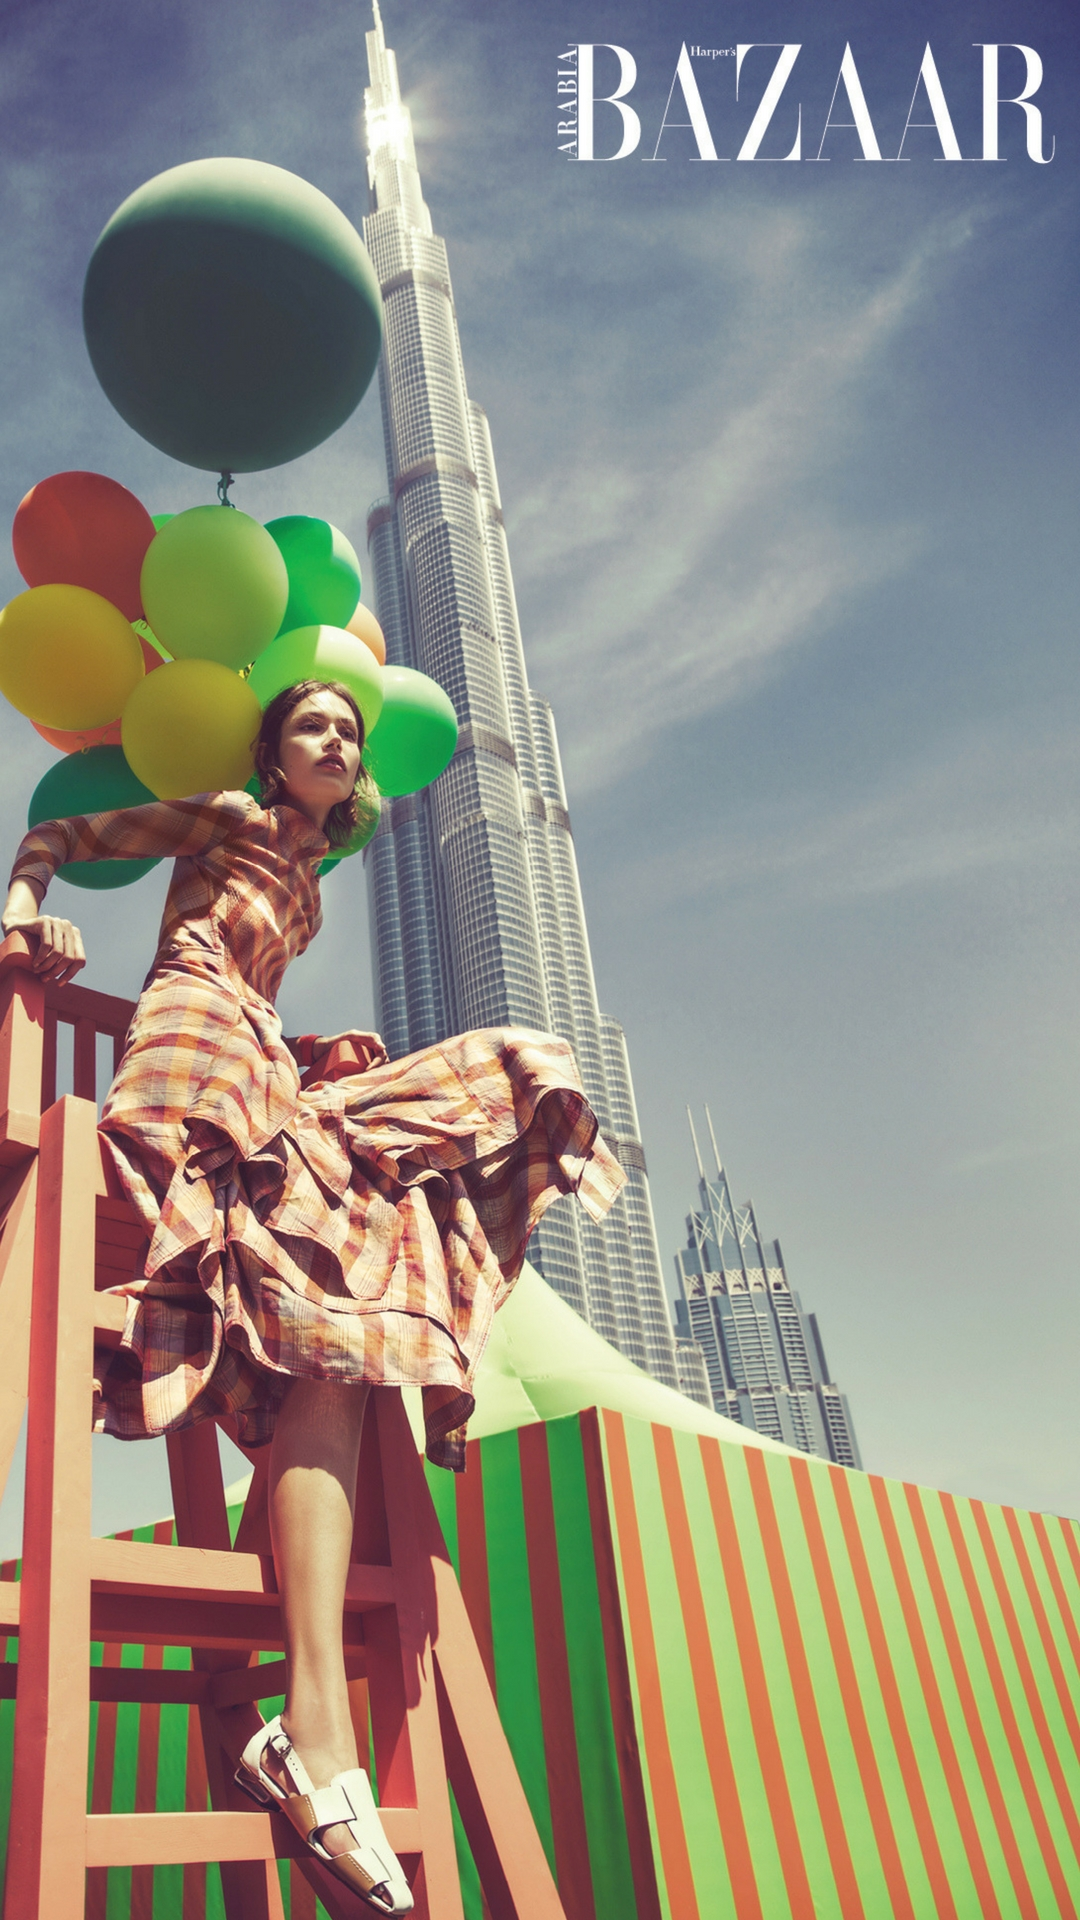 All the fun of the fair comes to Downtown Dubai in the world's most fashionable playground